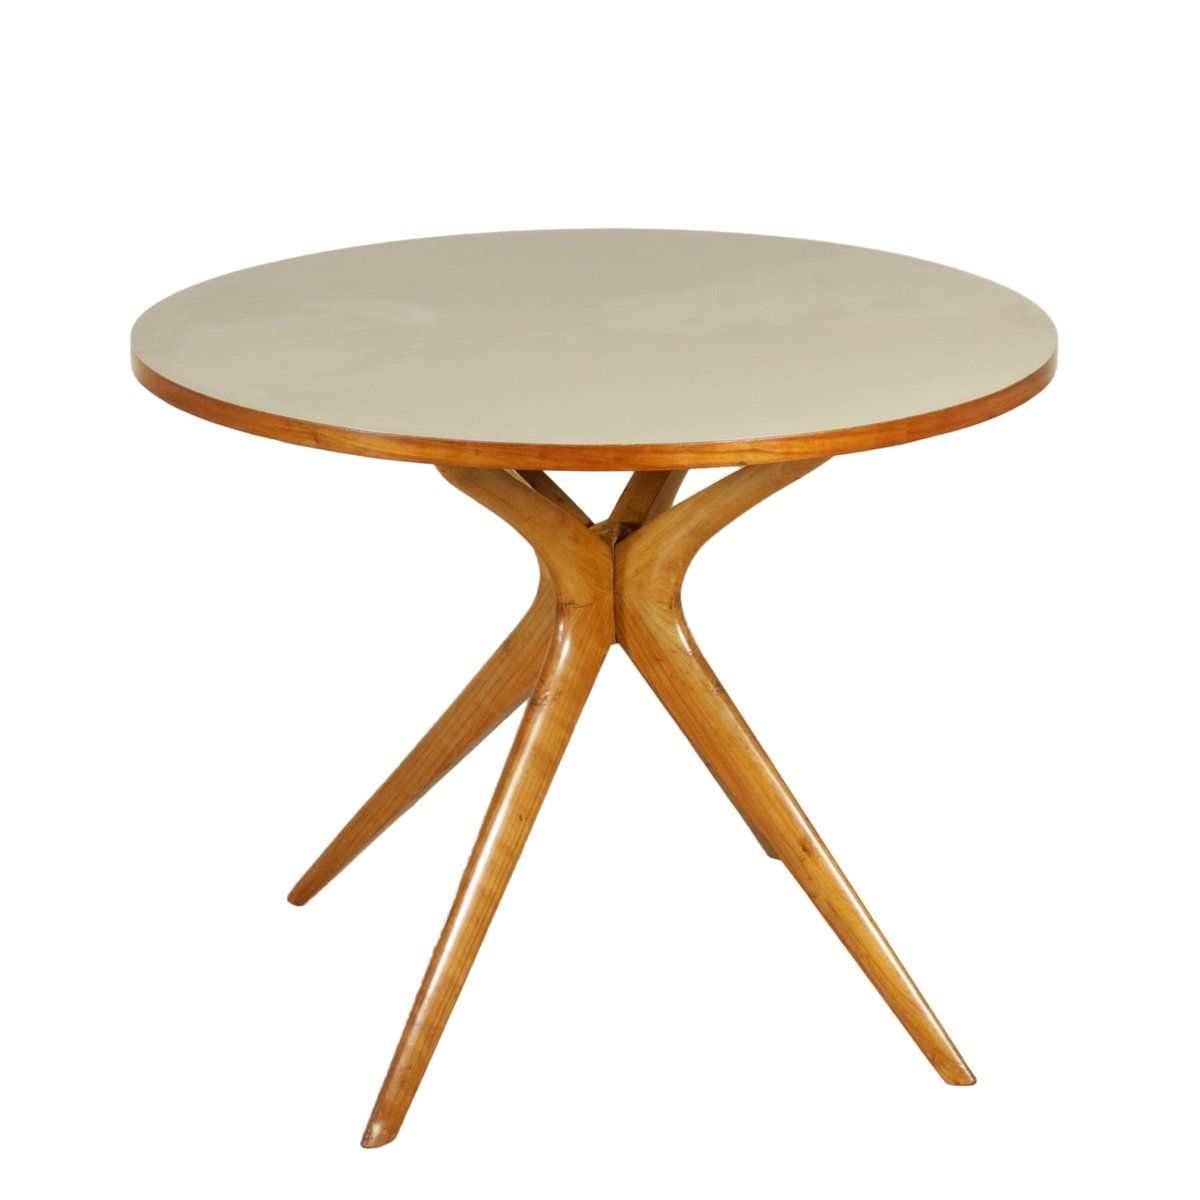 Italian beech and formica table 1950s for sale at pamono for Formica table